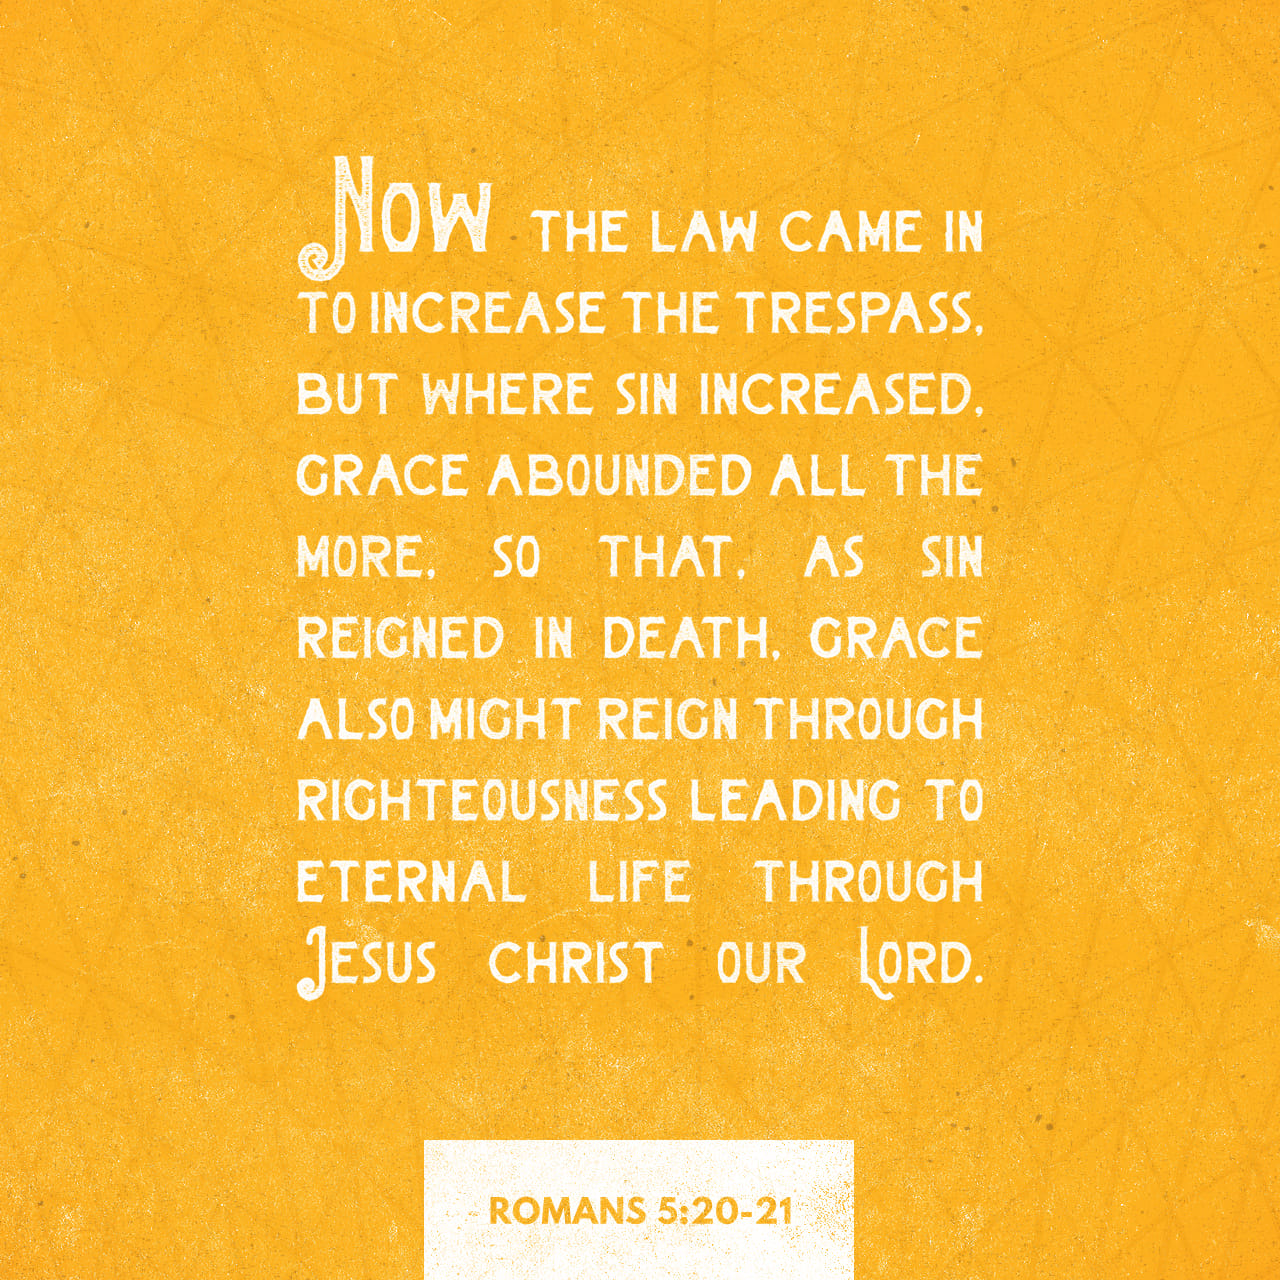 Romans 5:20-21 The Law stepped in to amplify the failure, but where sin increased, grace multiplied even more. The result is that grace will rule through God's righteousness, leading to eternal life through Jesus Ch